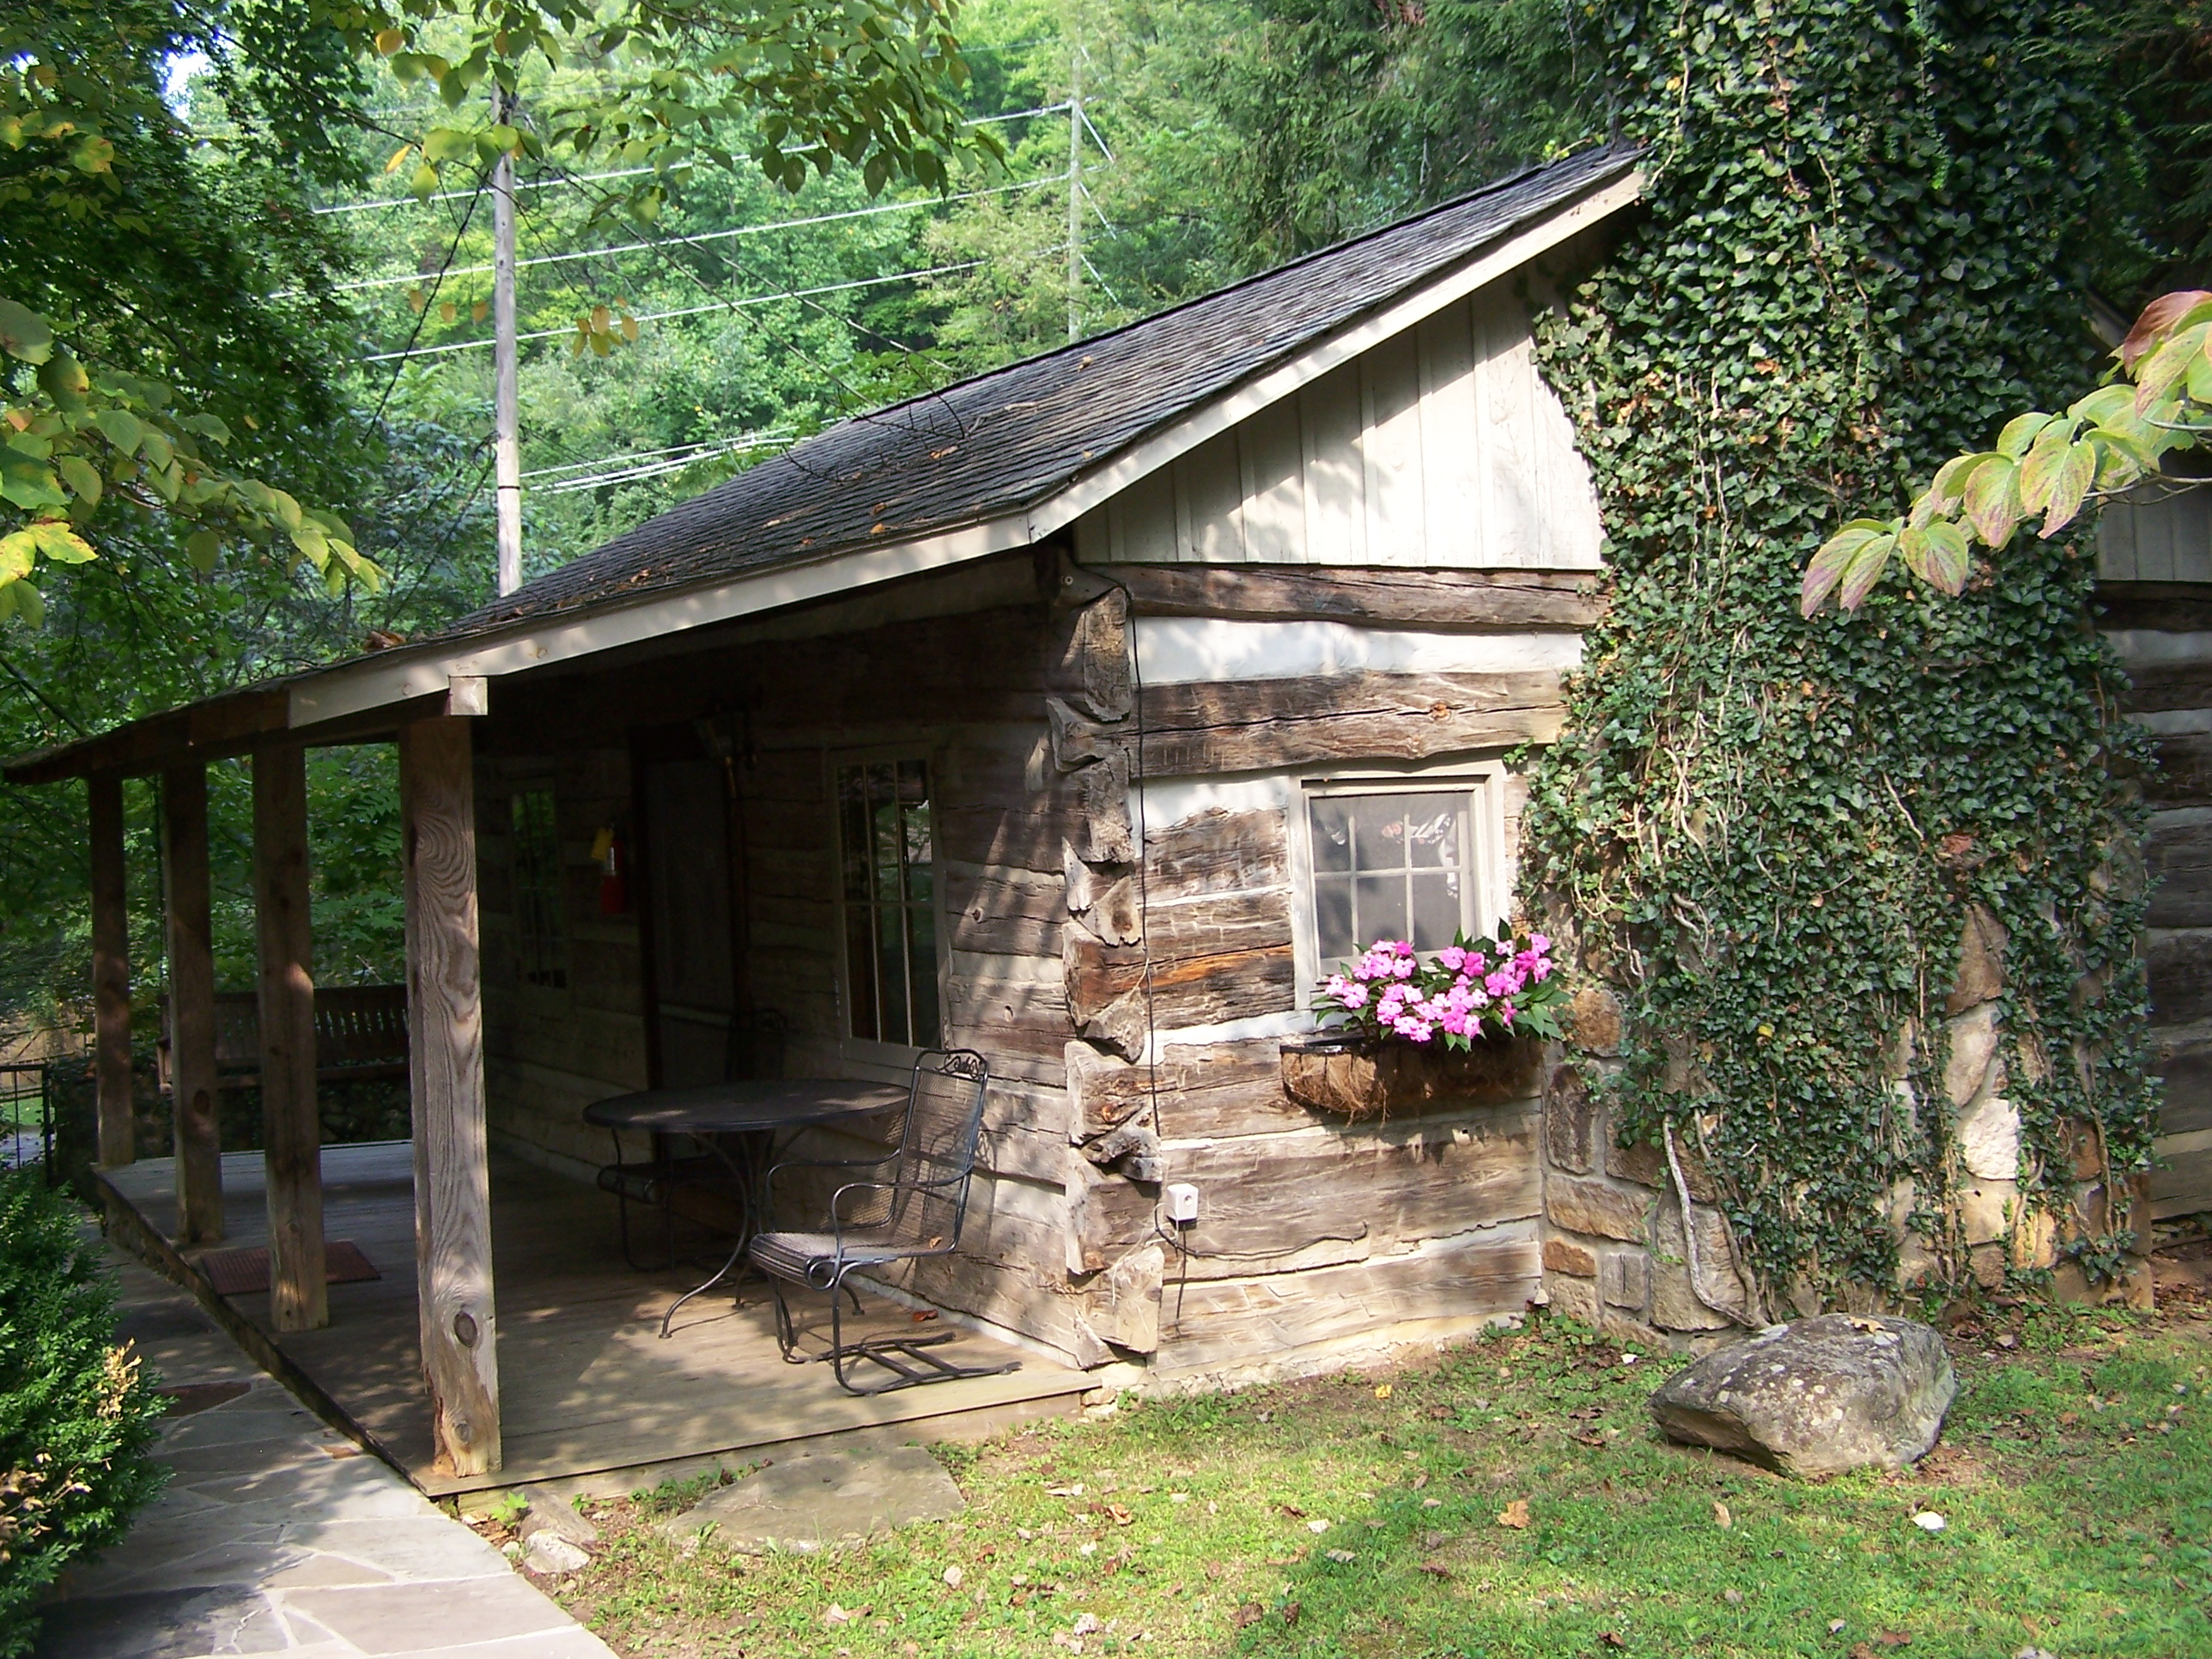 Tremendous Carrs Northside Cottages And Motel In Gatlinburg Tennessee Interior Design Ideas Tzicisoteloinfo